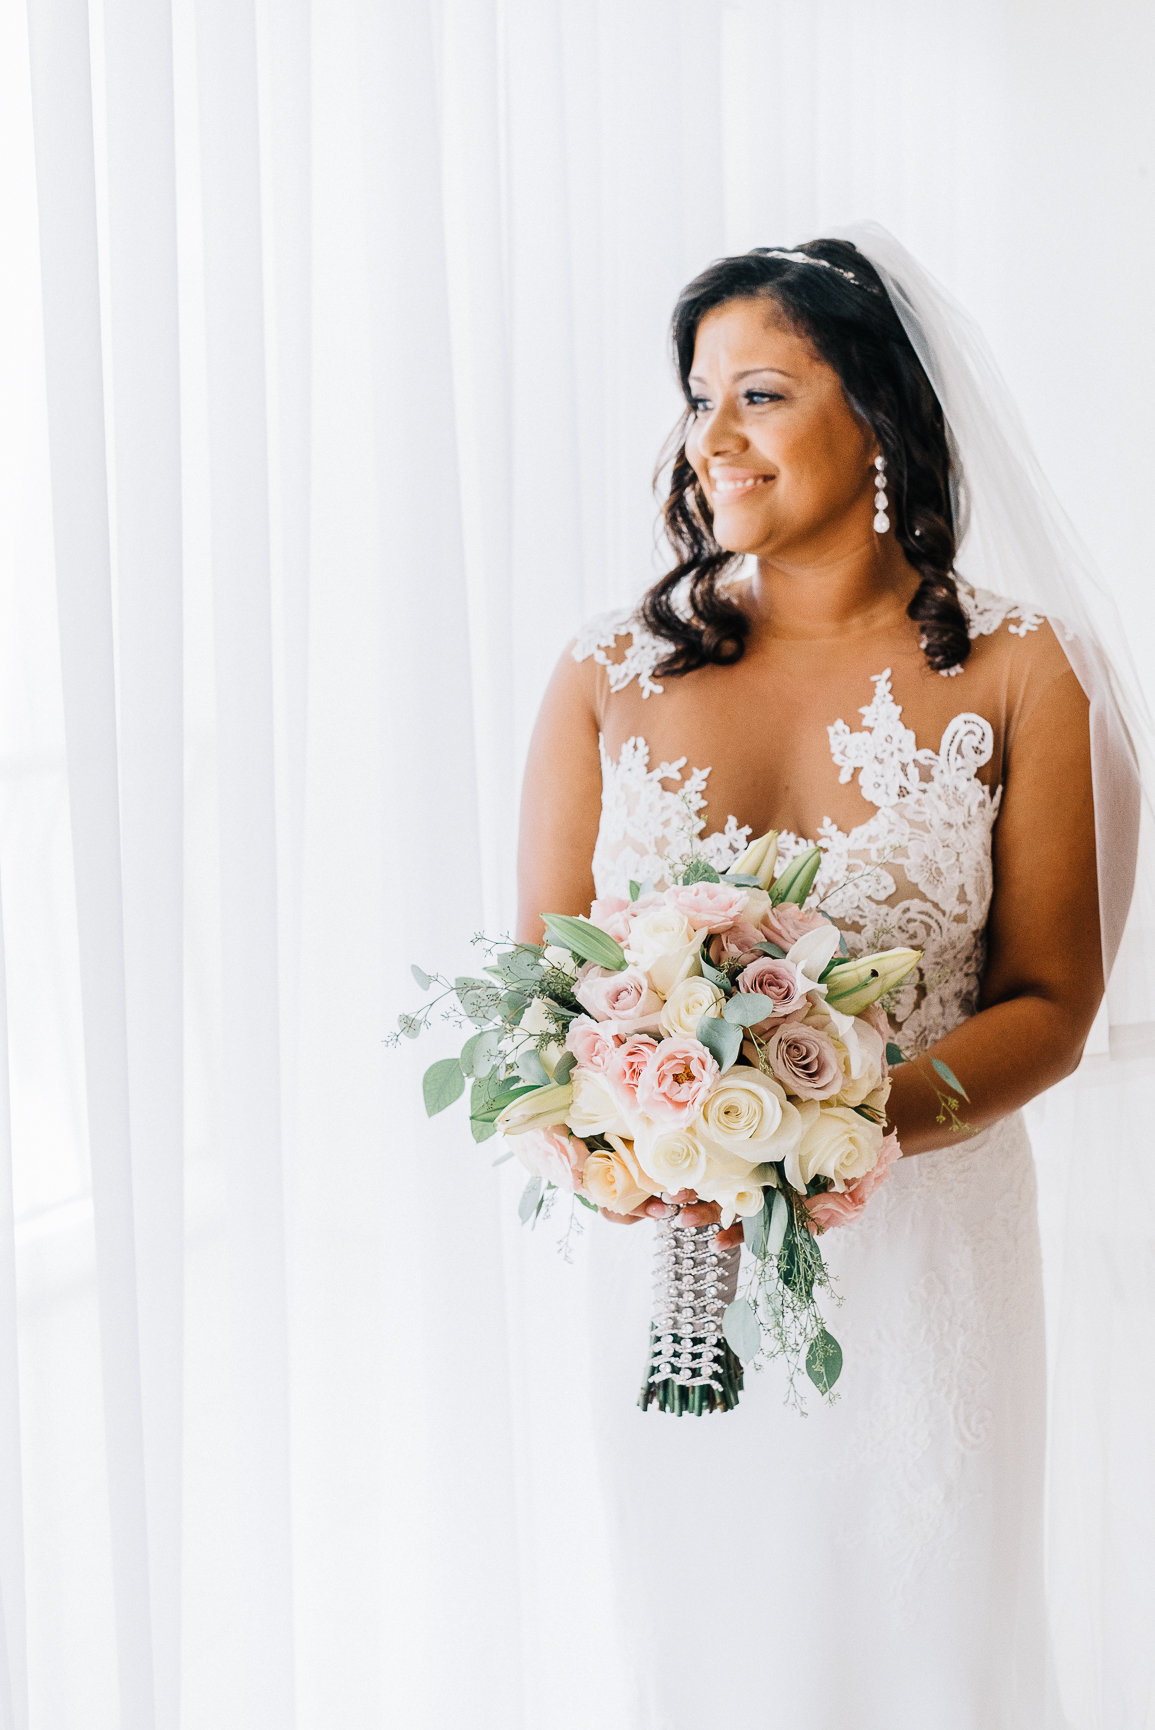 WEDDINGPHOTOGRAPHERMIAMI-45